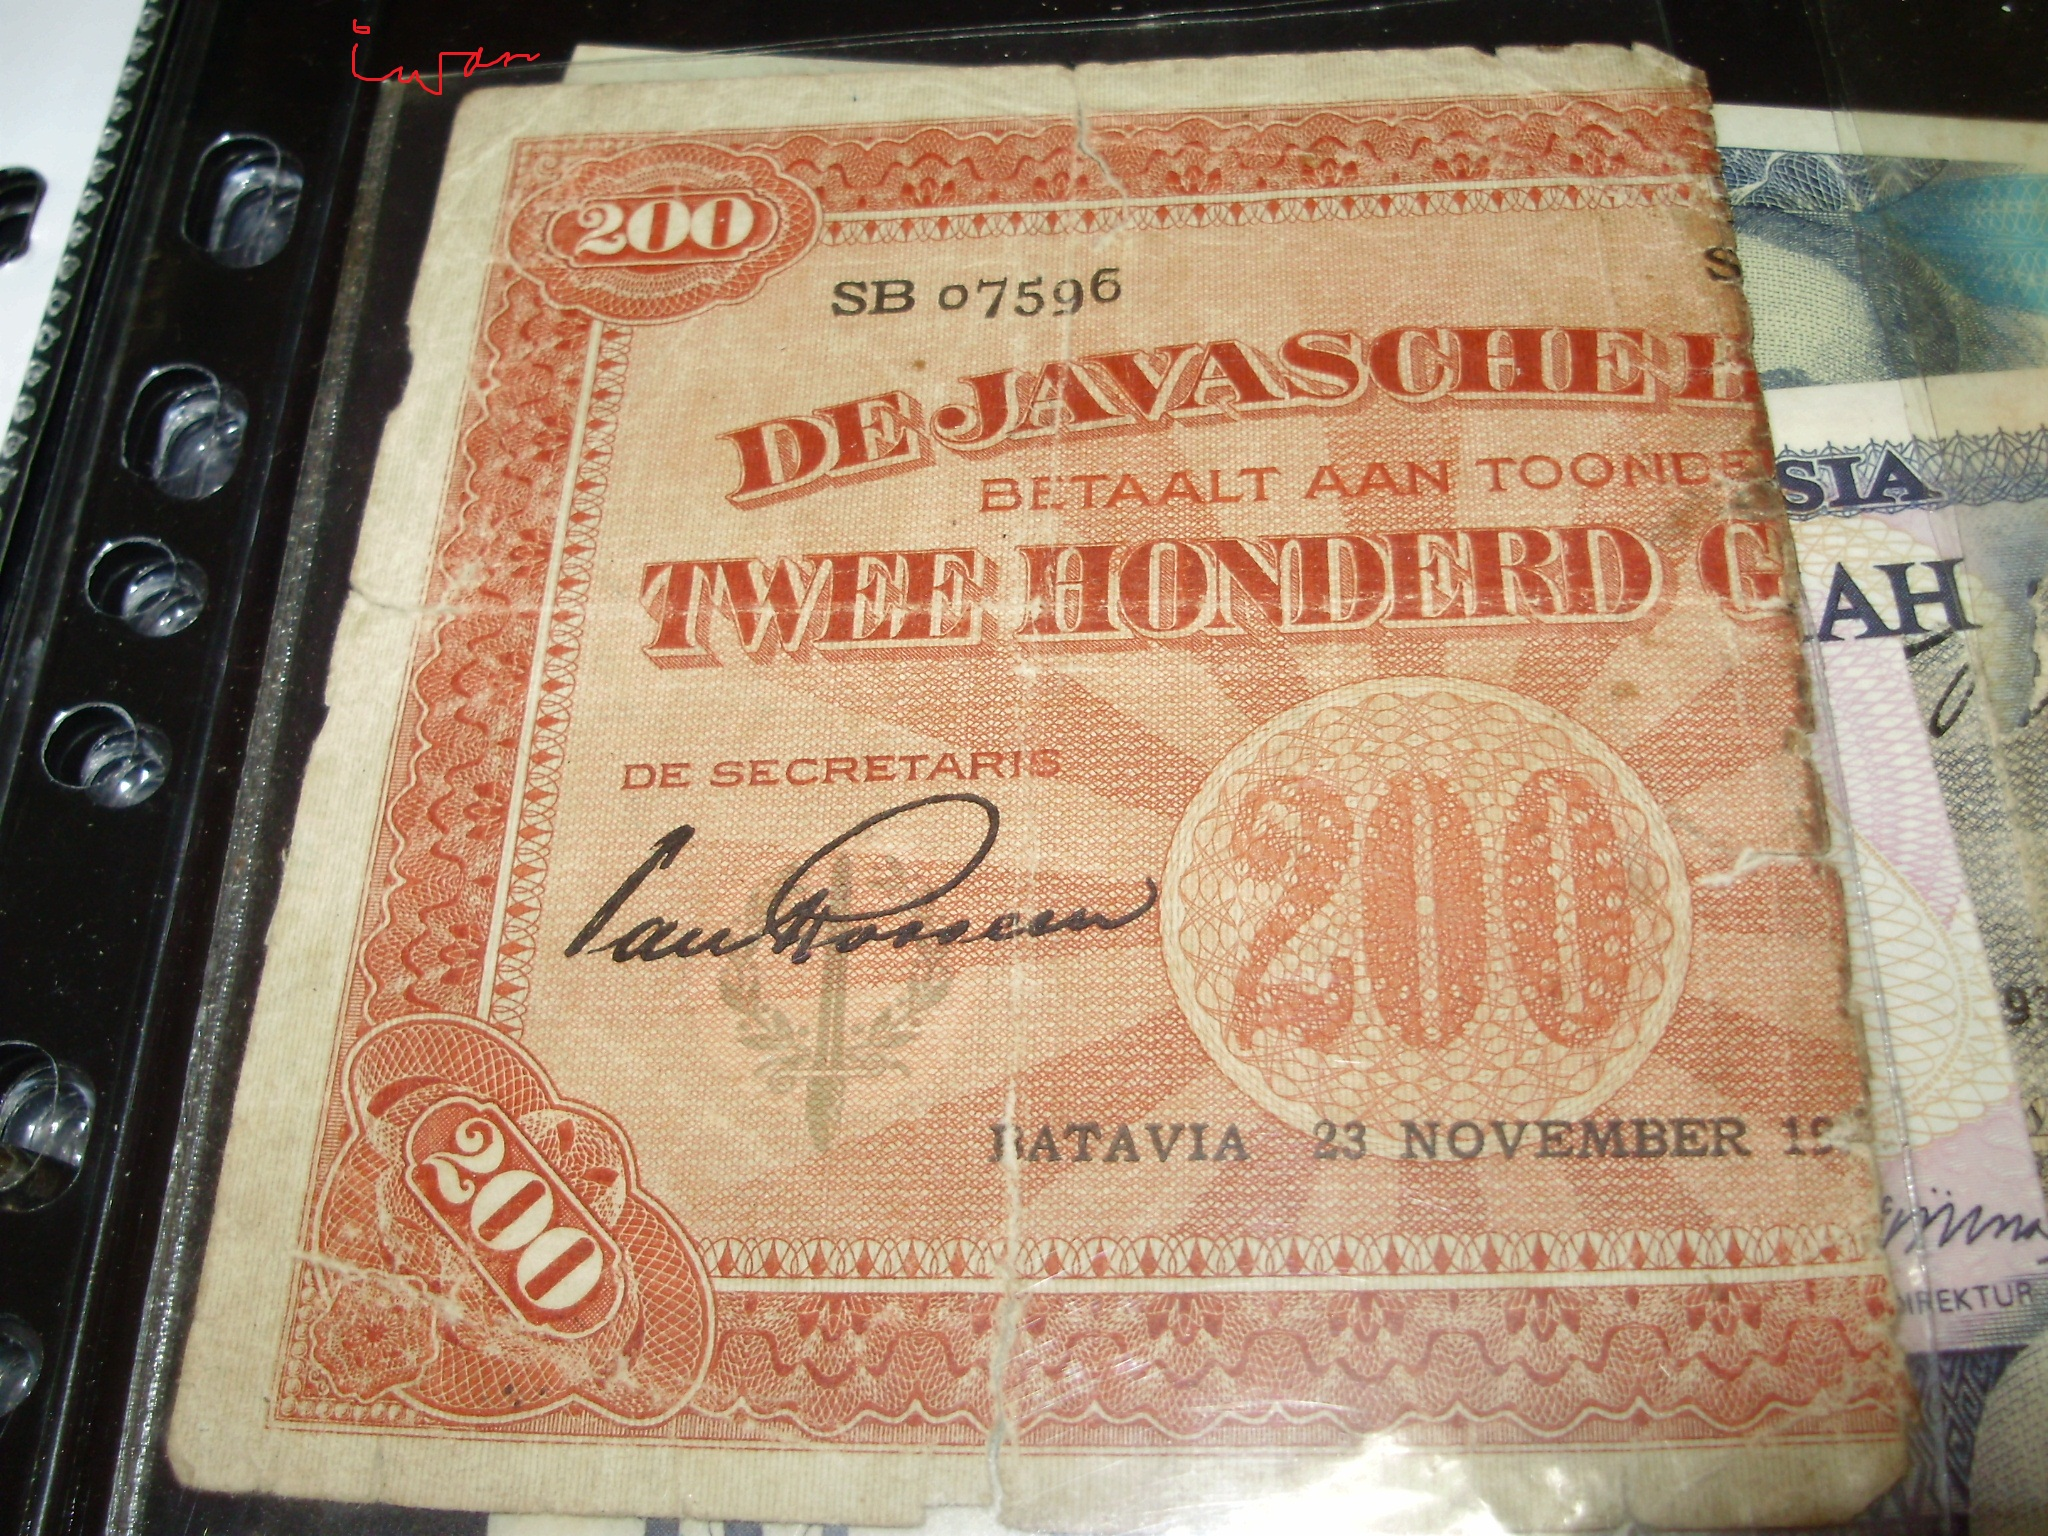 Driwanmasterpiece CybermuseumThe Rare Indonesian Bisect Papermoney